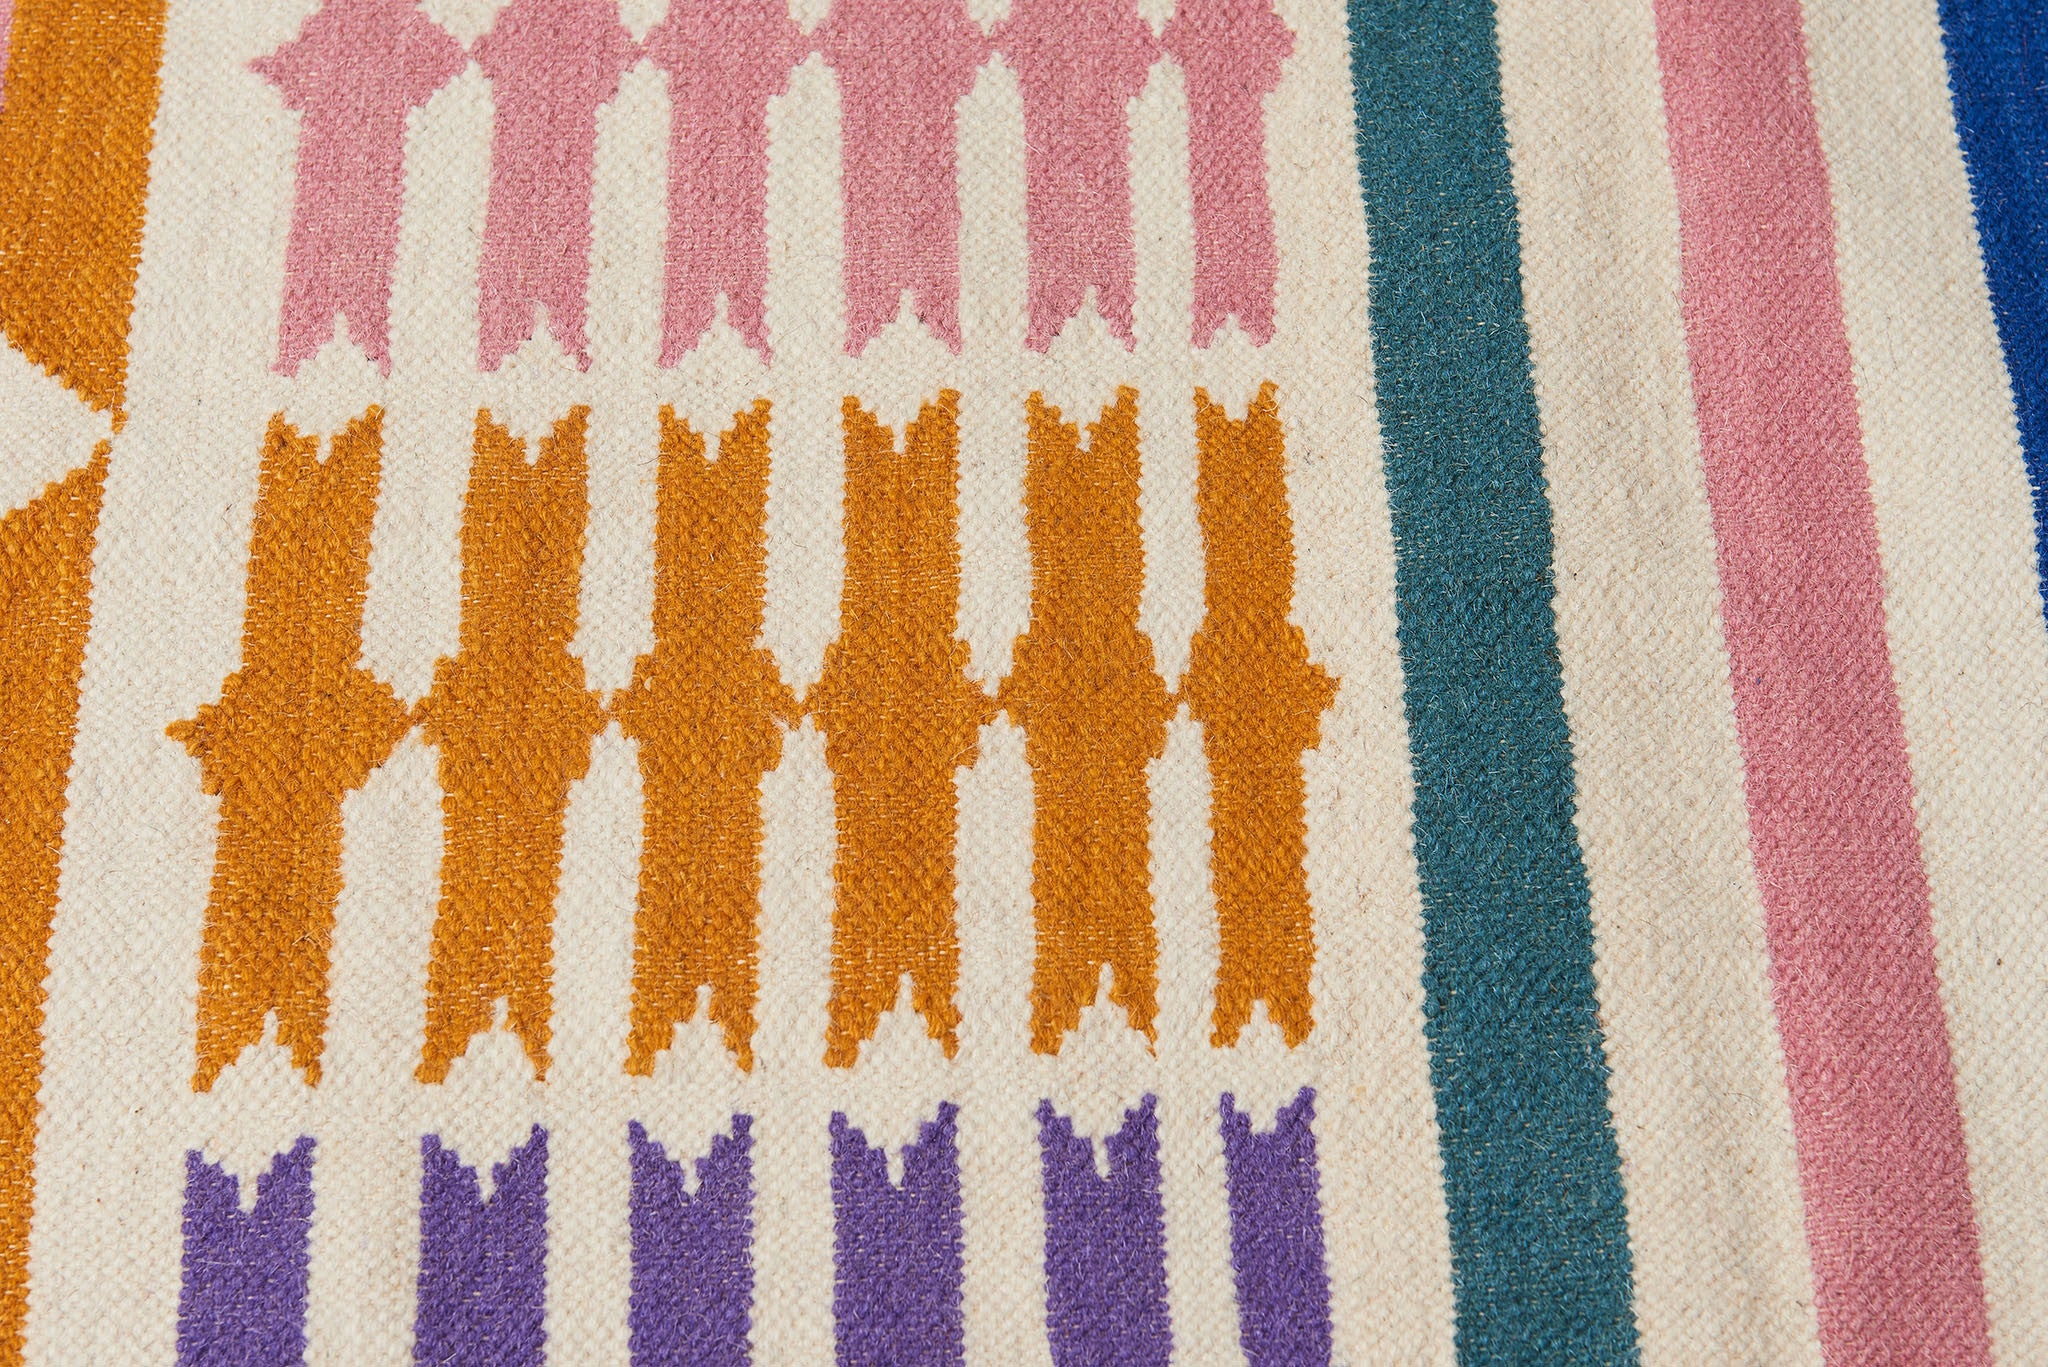 Heat Wave in Rajasthan Flat Weave Rug